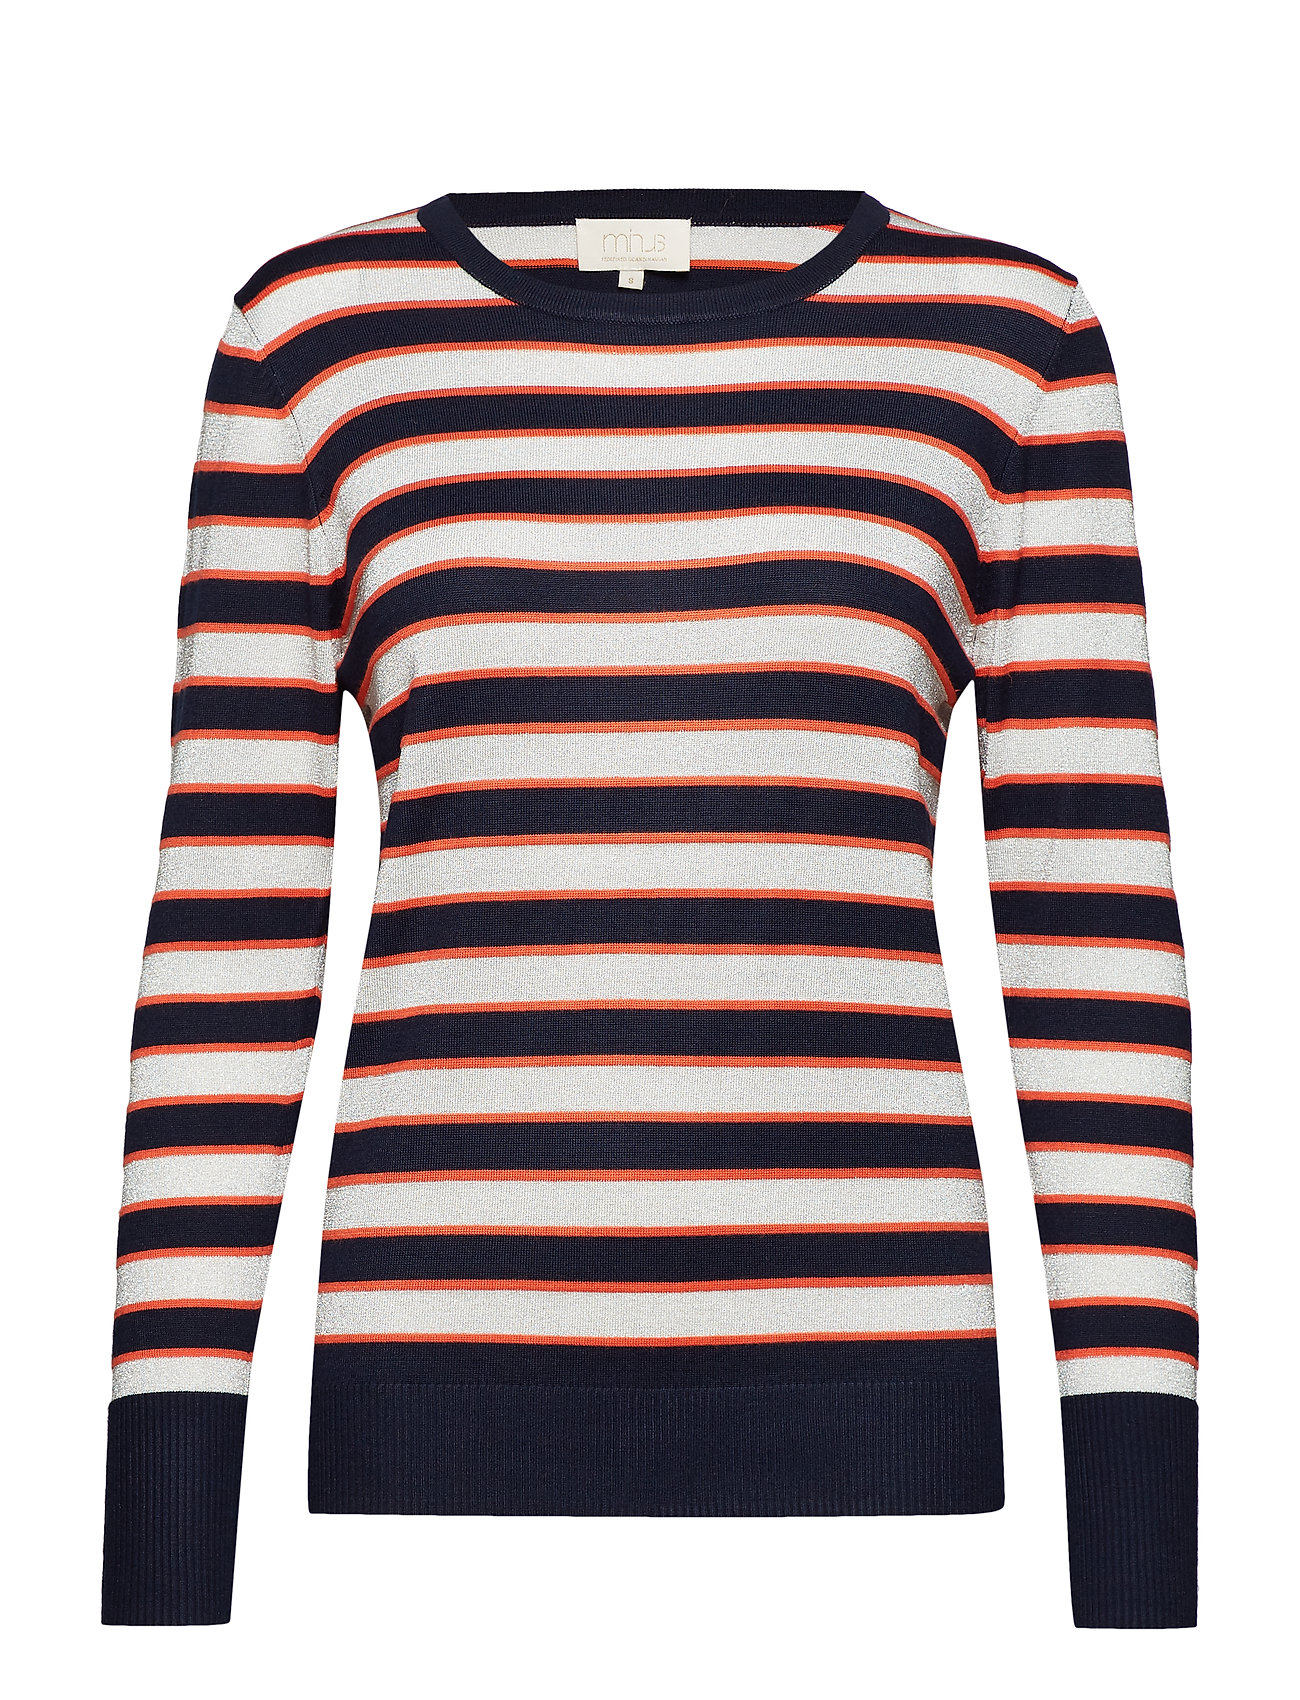 Minus Amara knit pullover - STRIPED BLACK IRIS